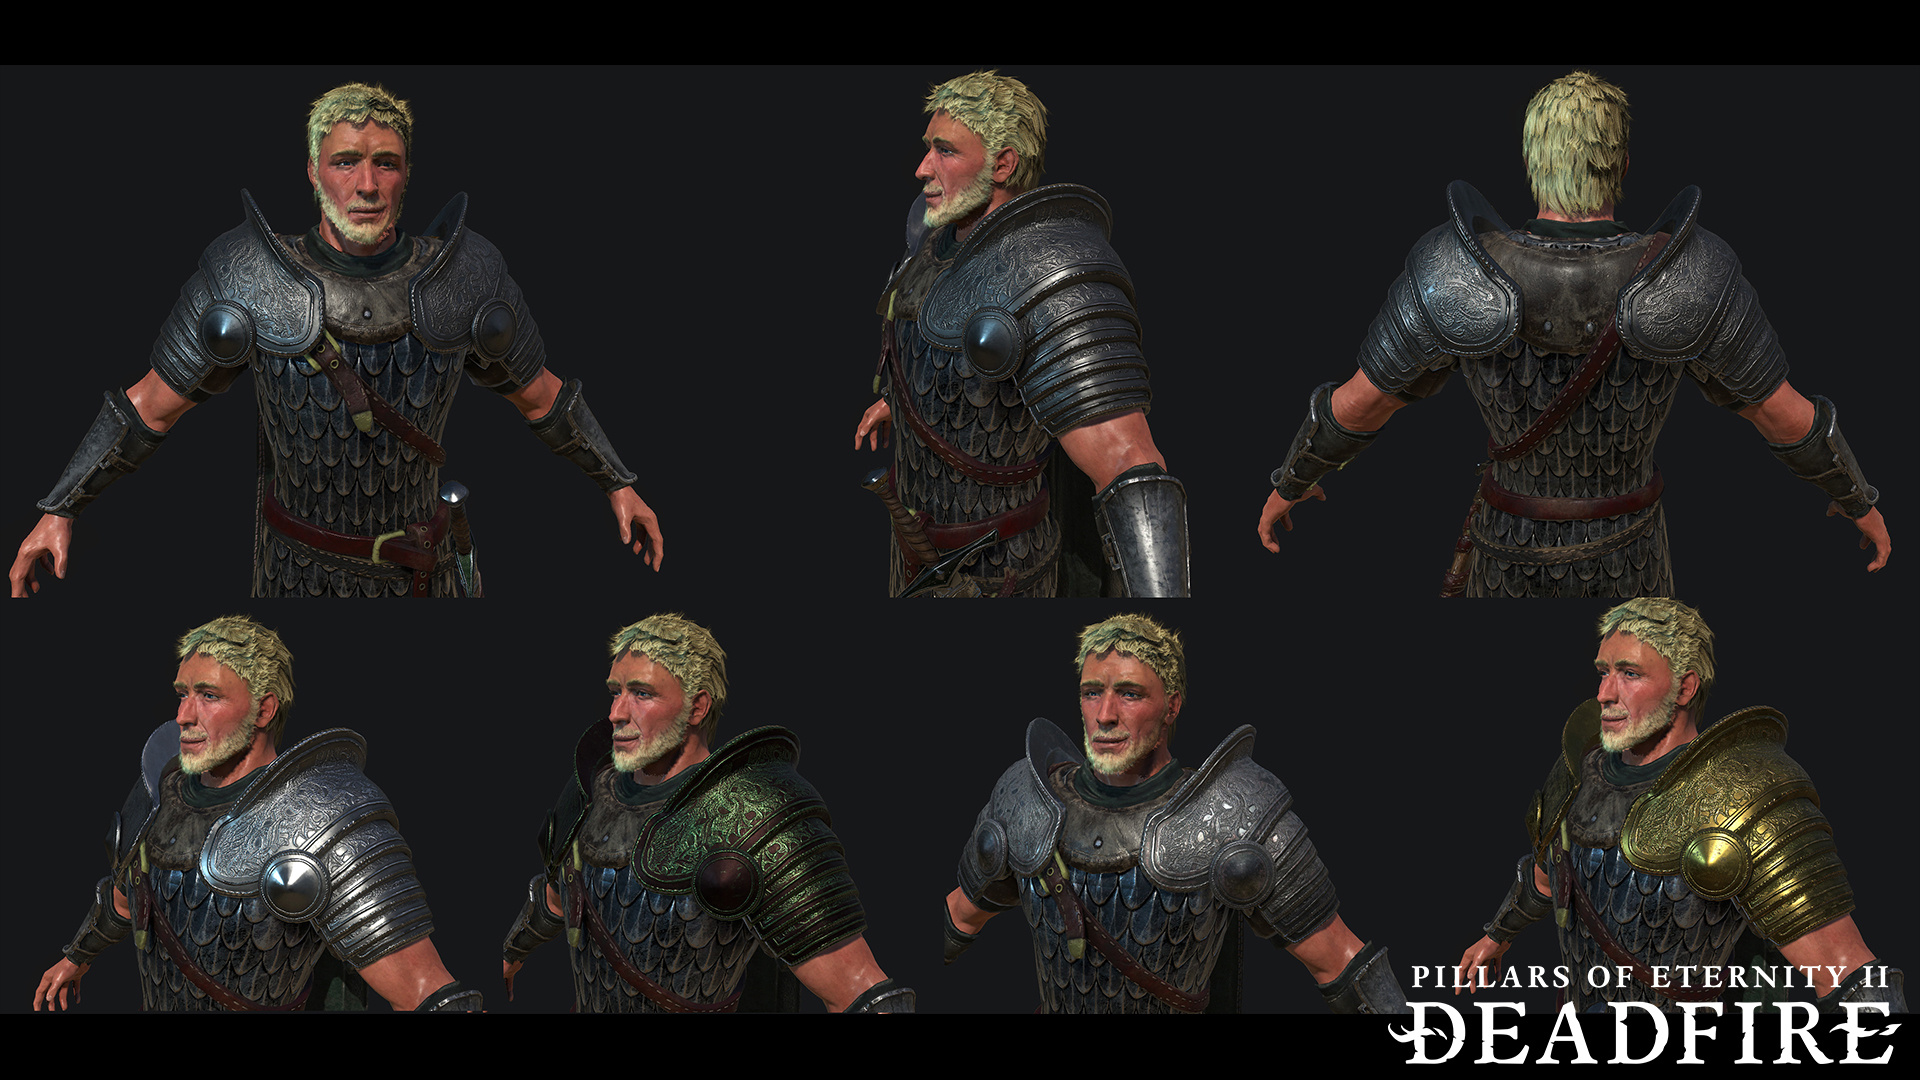 Pillars of Eternity II: Deadfire: Update #59 - The Forgotten